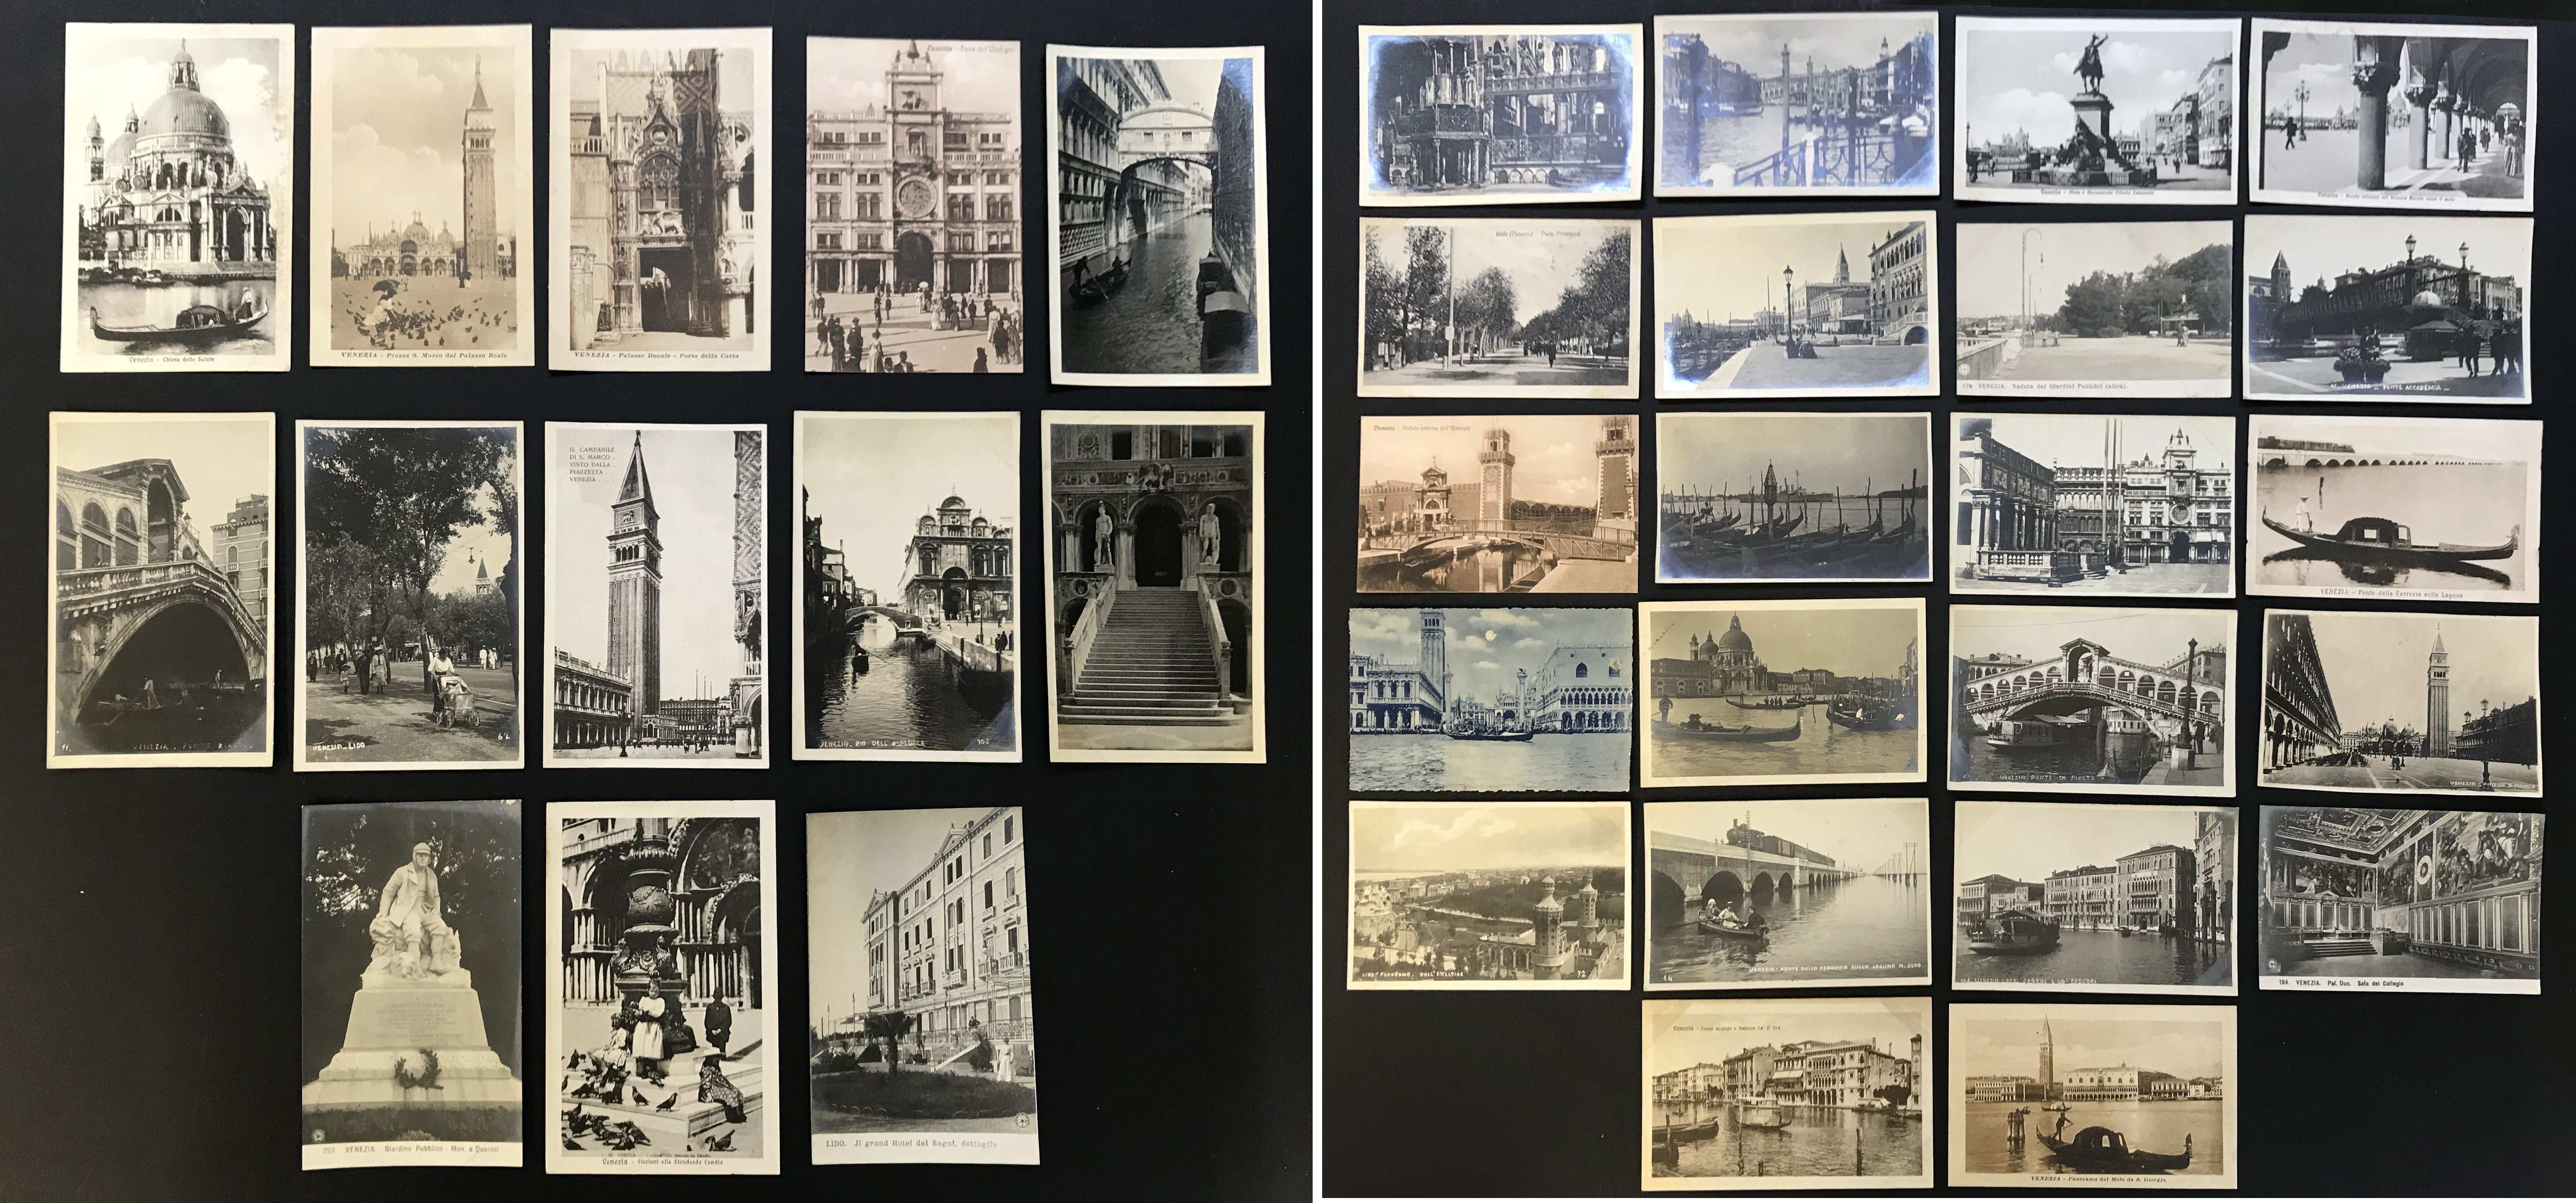 SELECTION OF VENICE RELATED POSTCARDS - Image 15 of 53